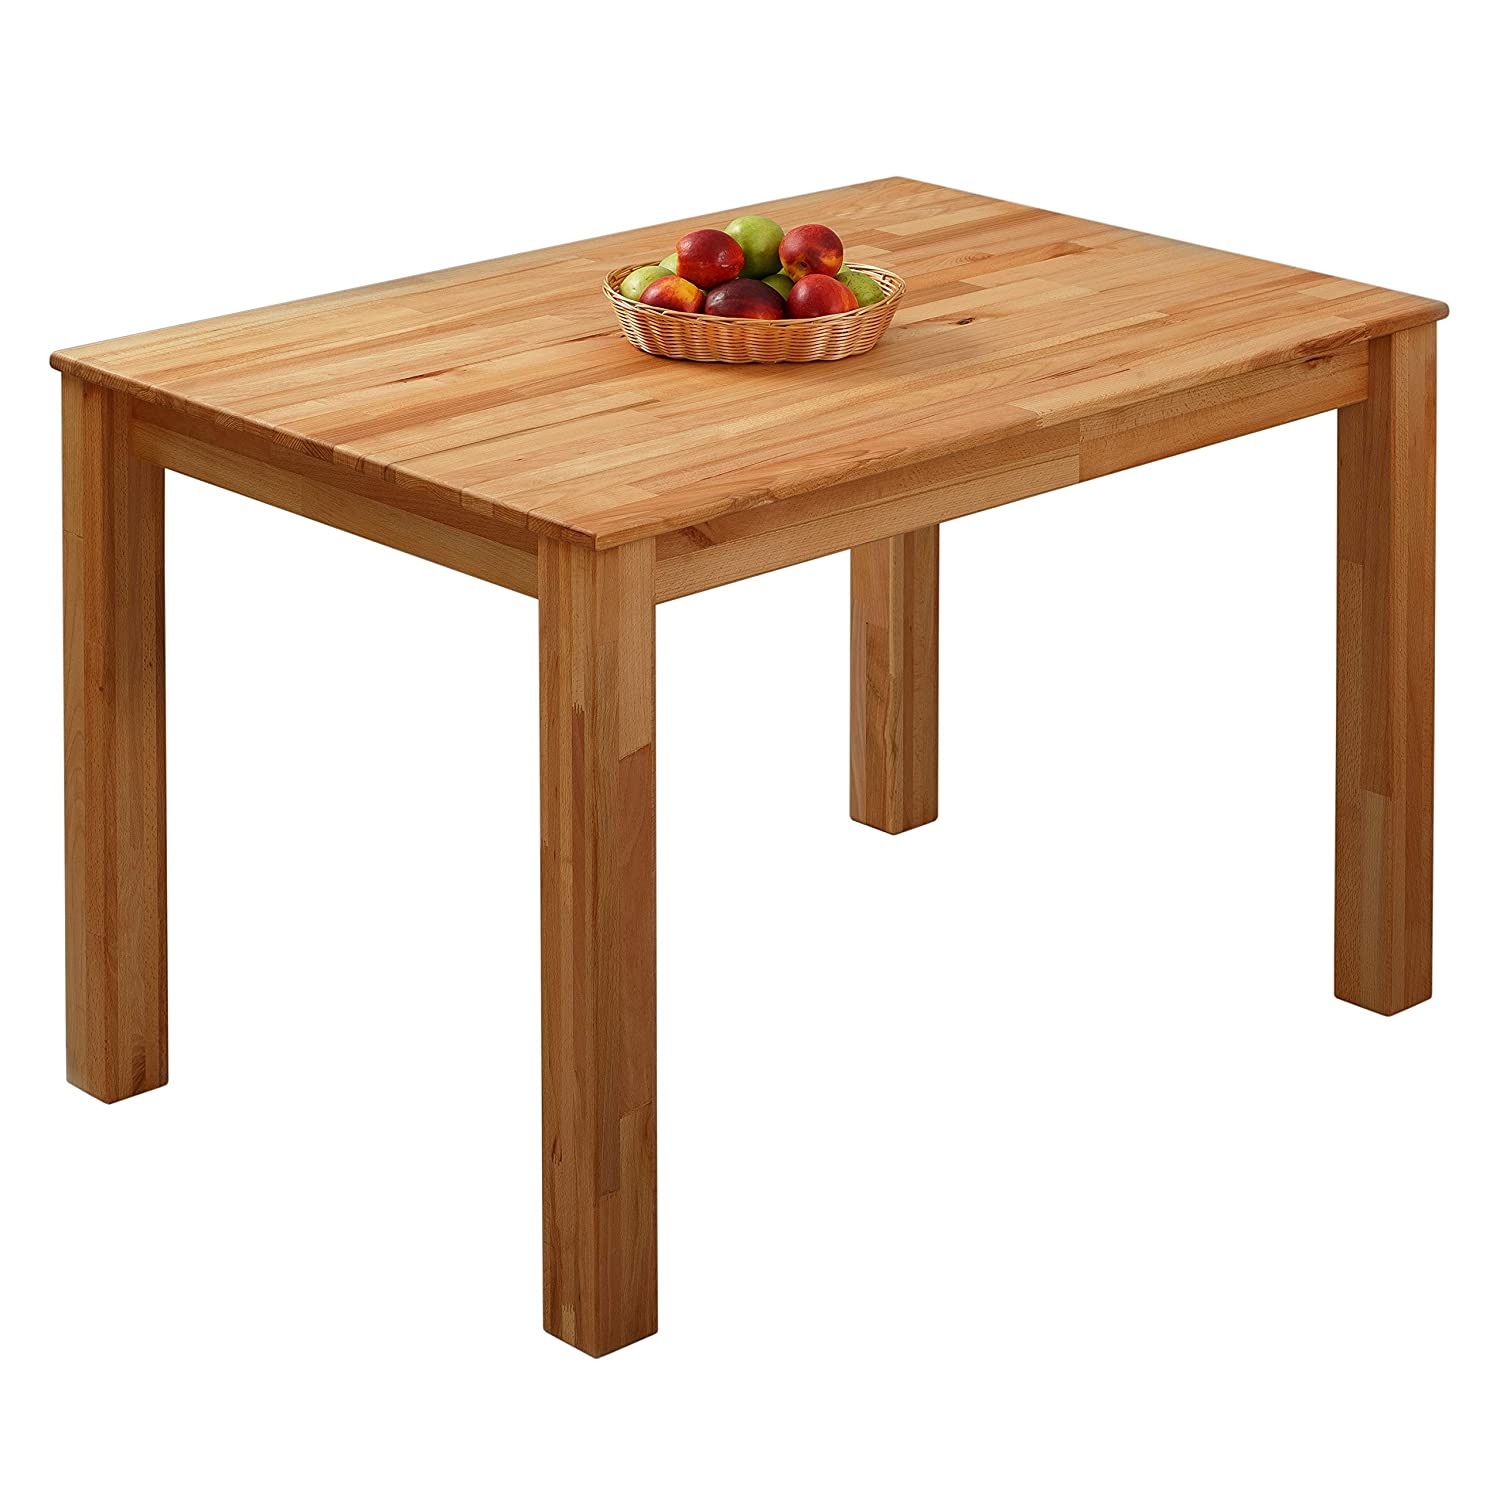 Dining Table Beech 100% FSC Bonn 75x75x75cm Krok Wood Ltd.